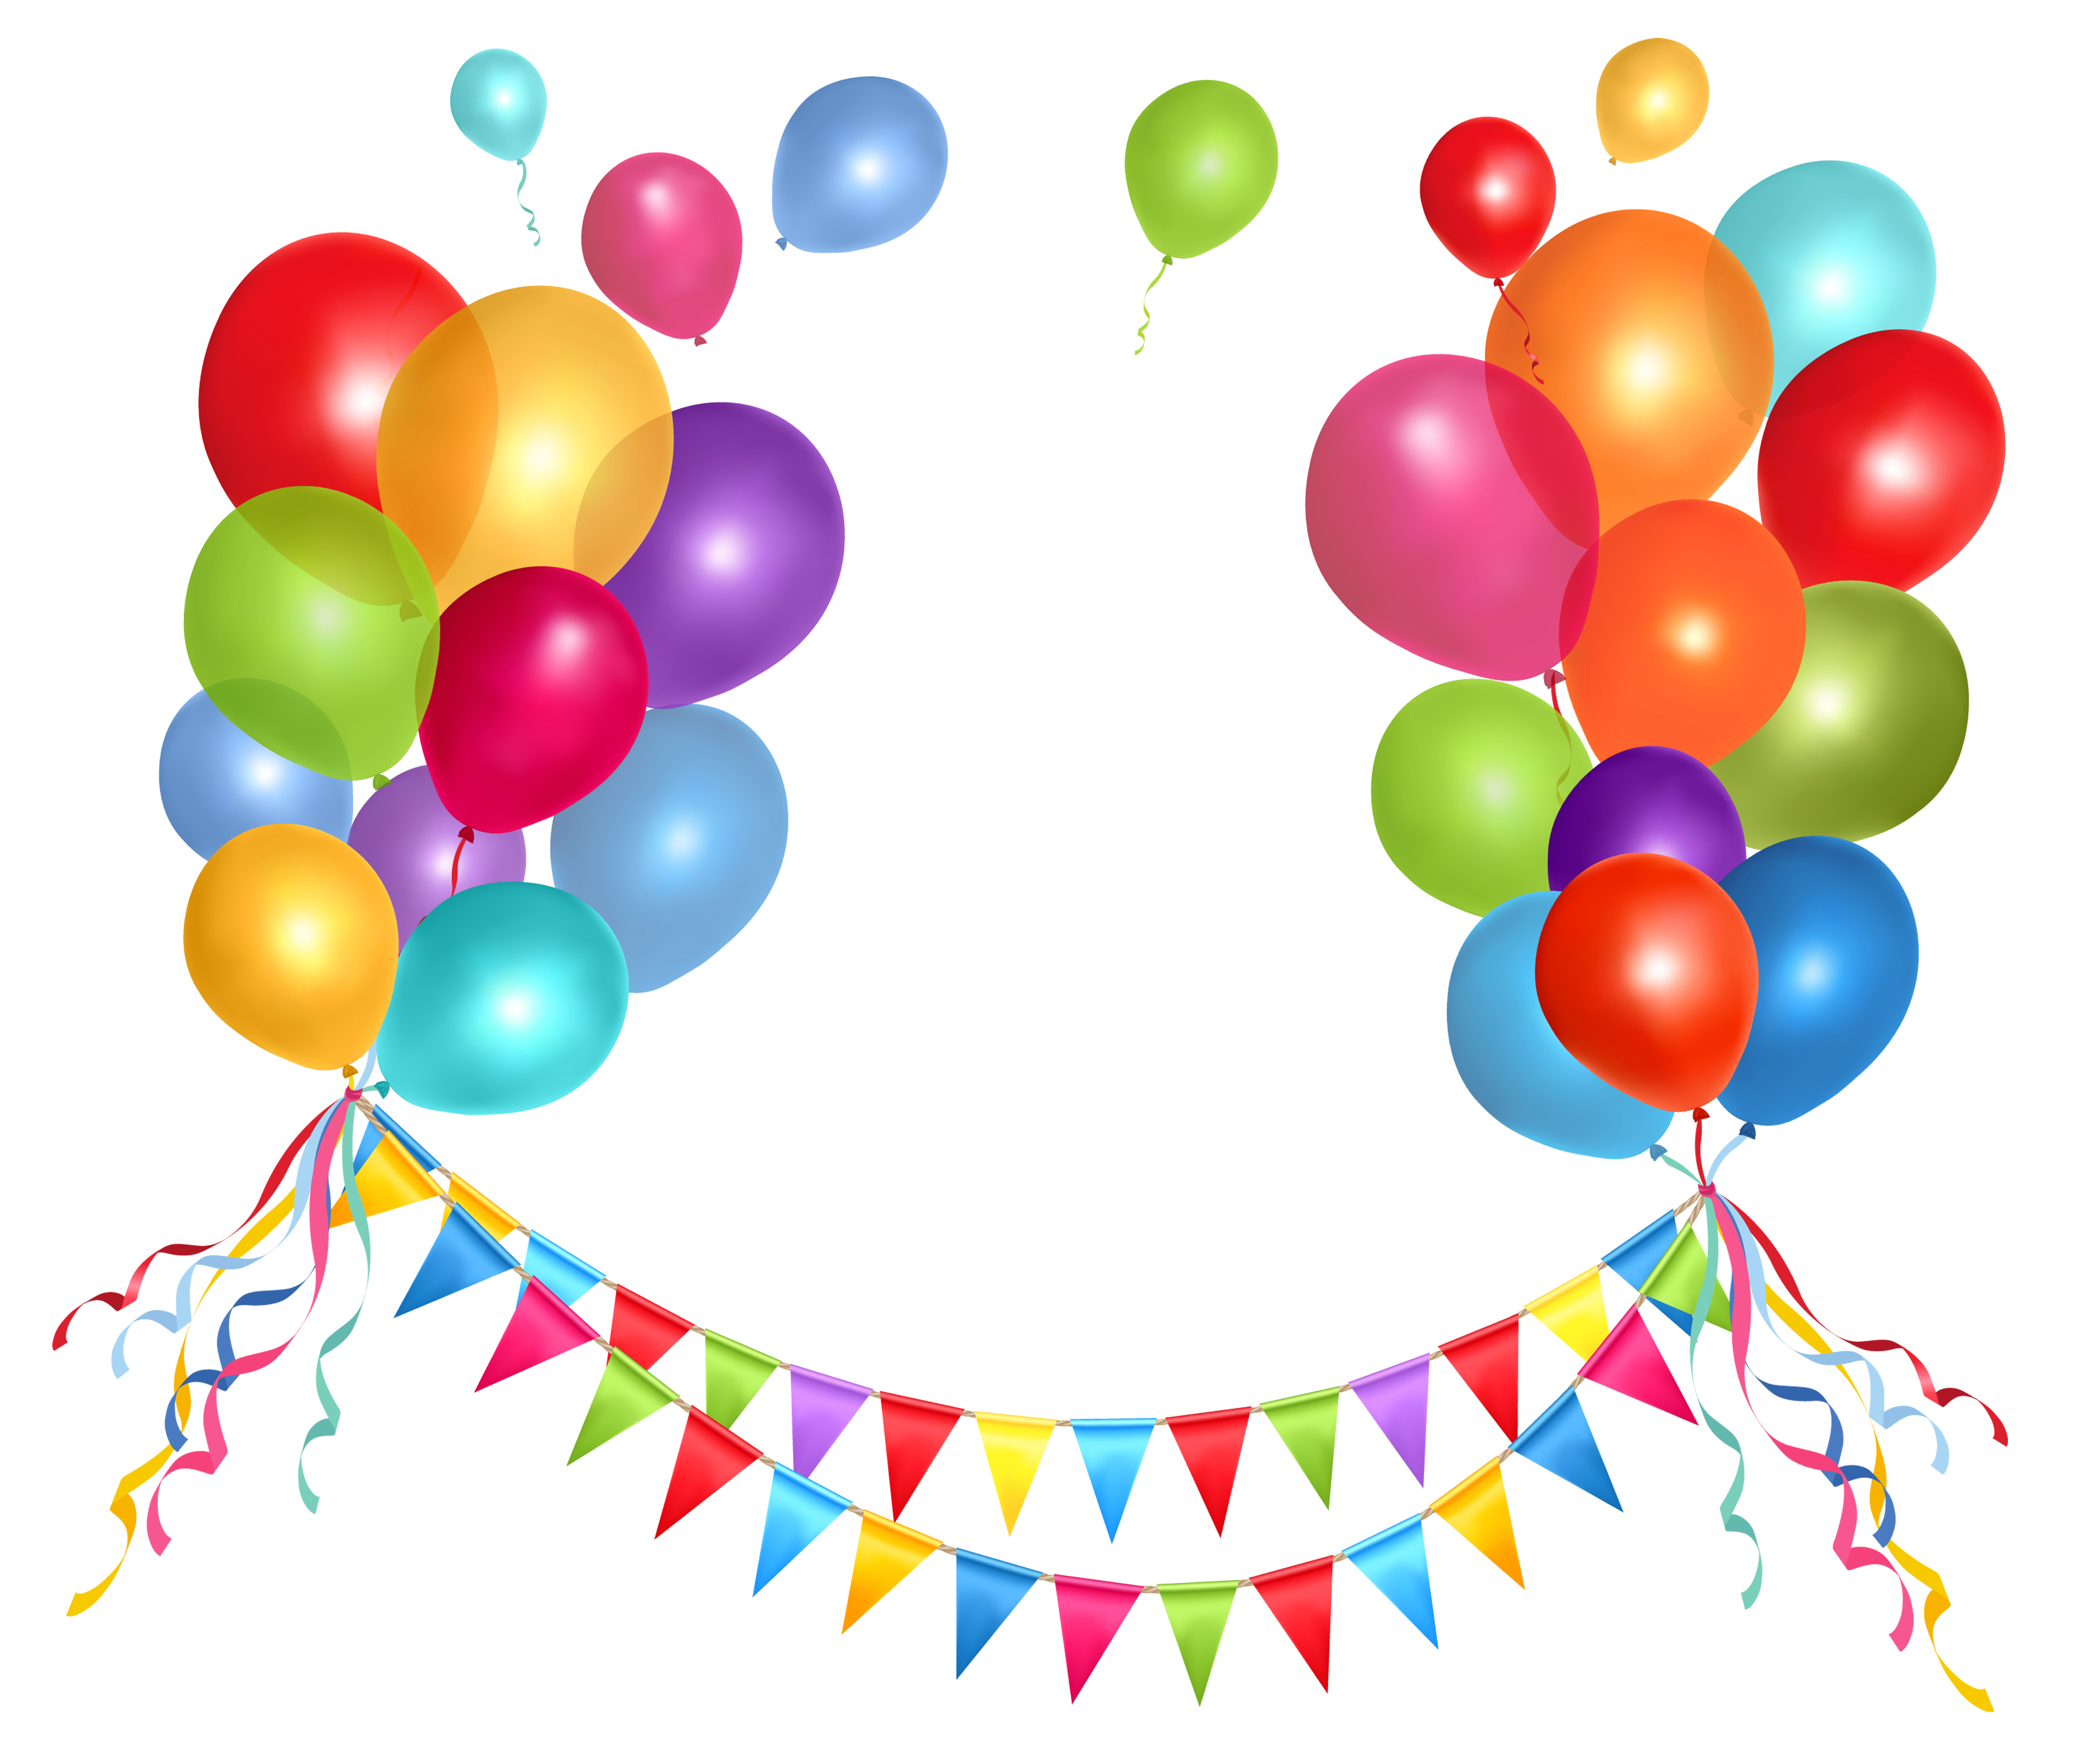 Party Balloons Png - ClipArt Best